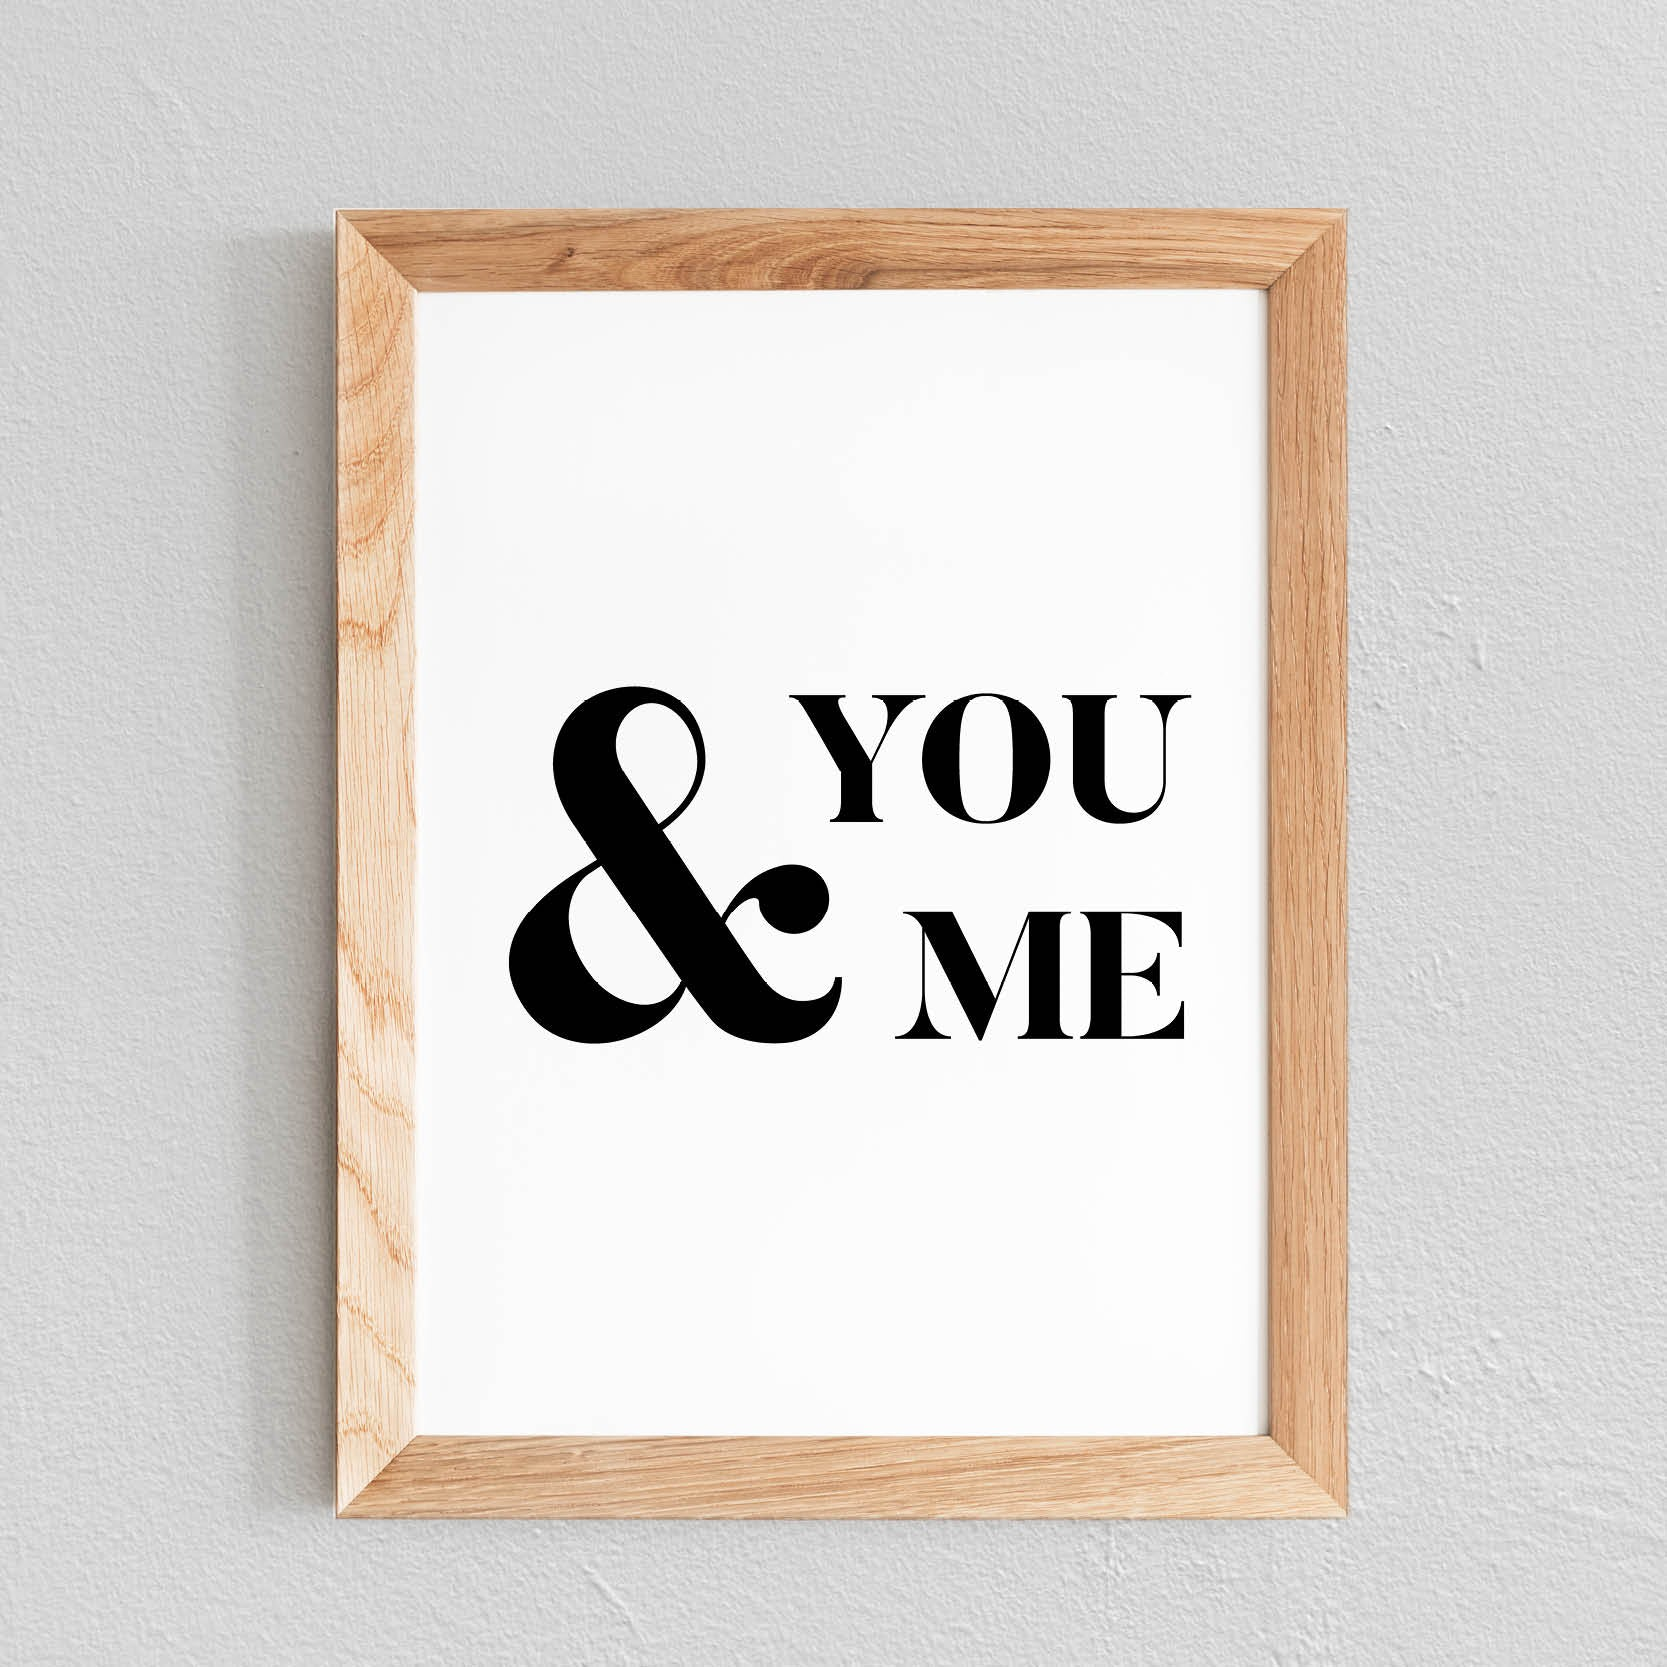 POSTER 'YOU & ME' - SEVEN PAPER